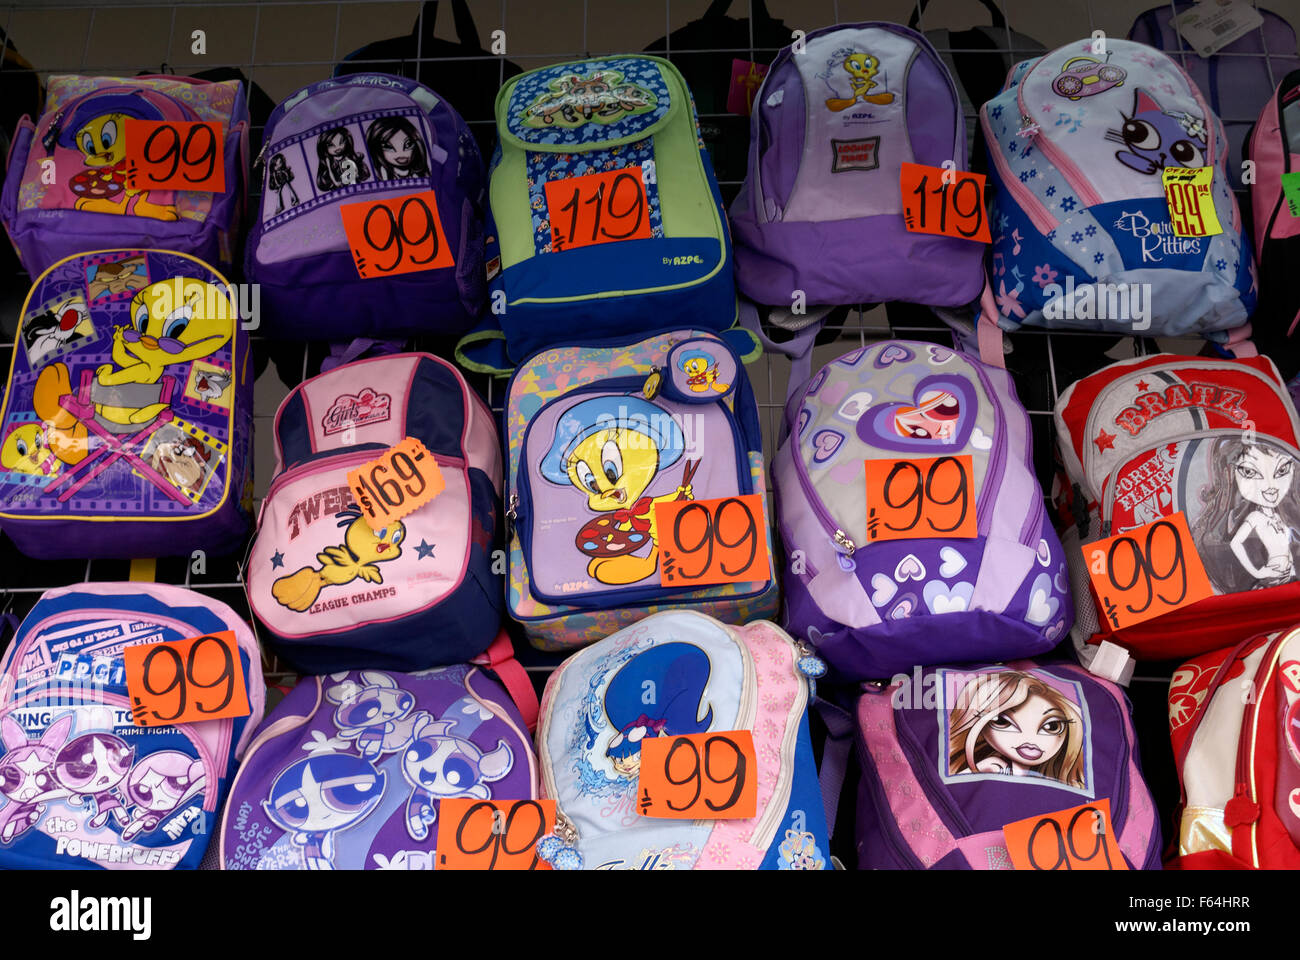 Colorful children's backpacks priced in Mexican pesos for sale in Mexico City - Stock Image